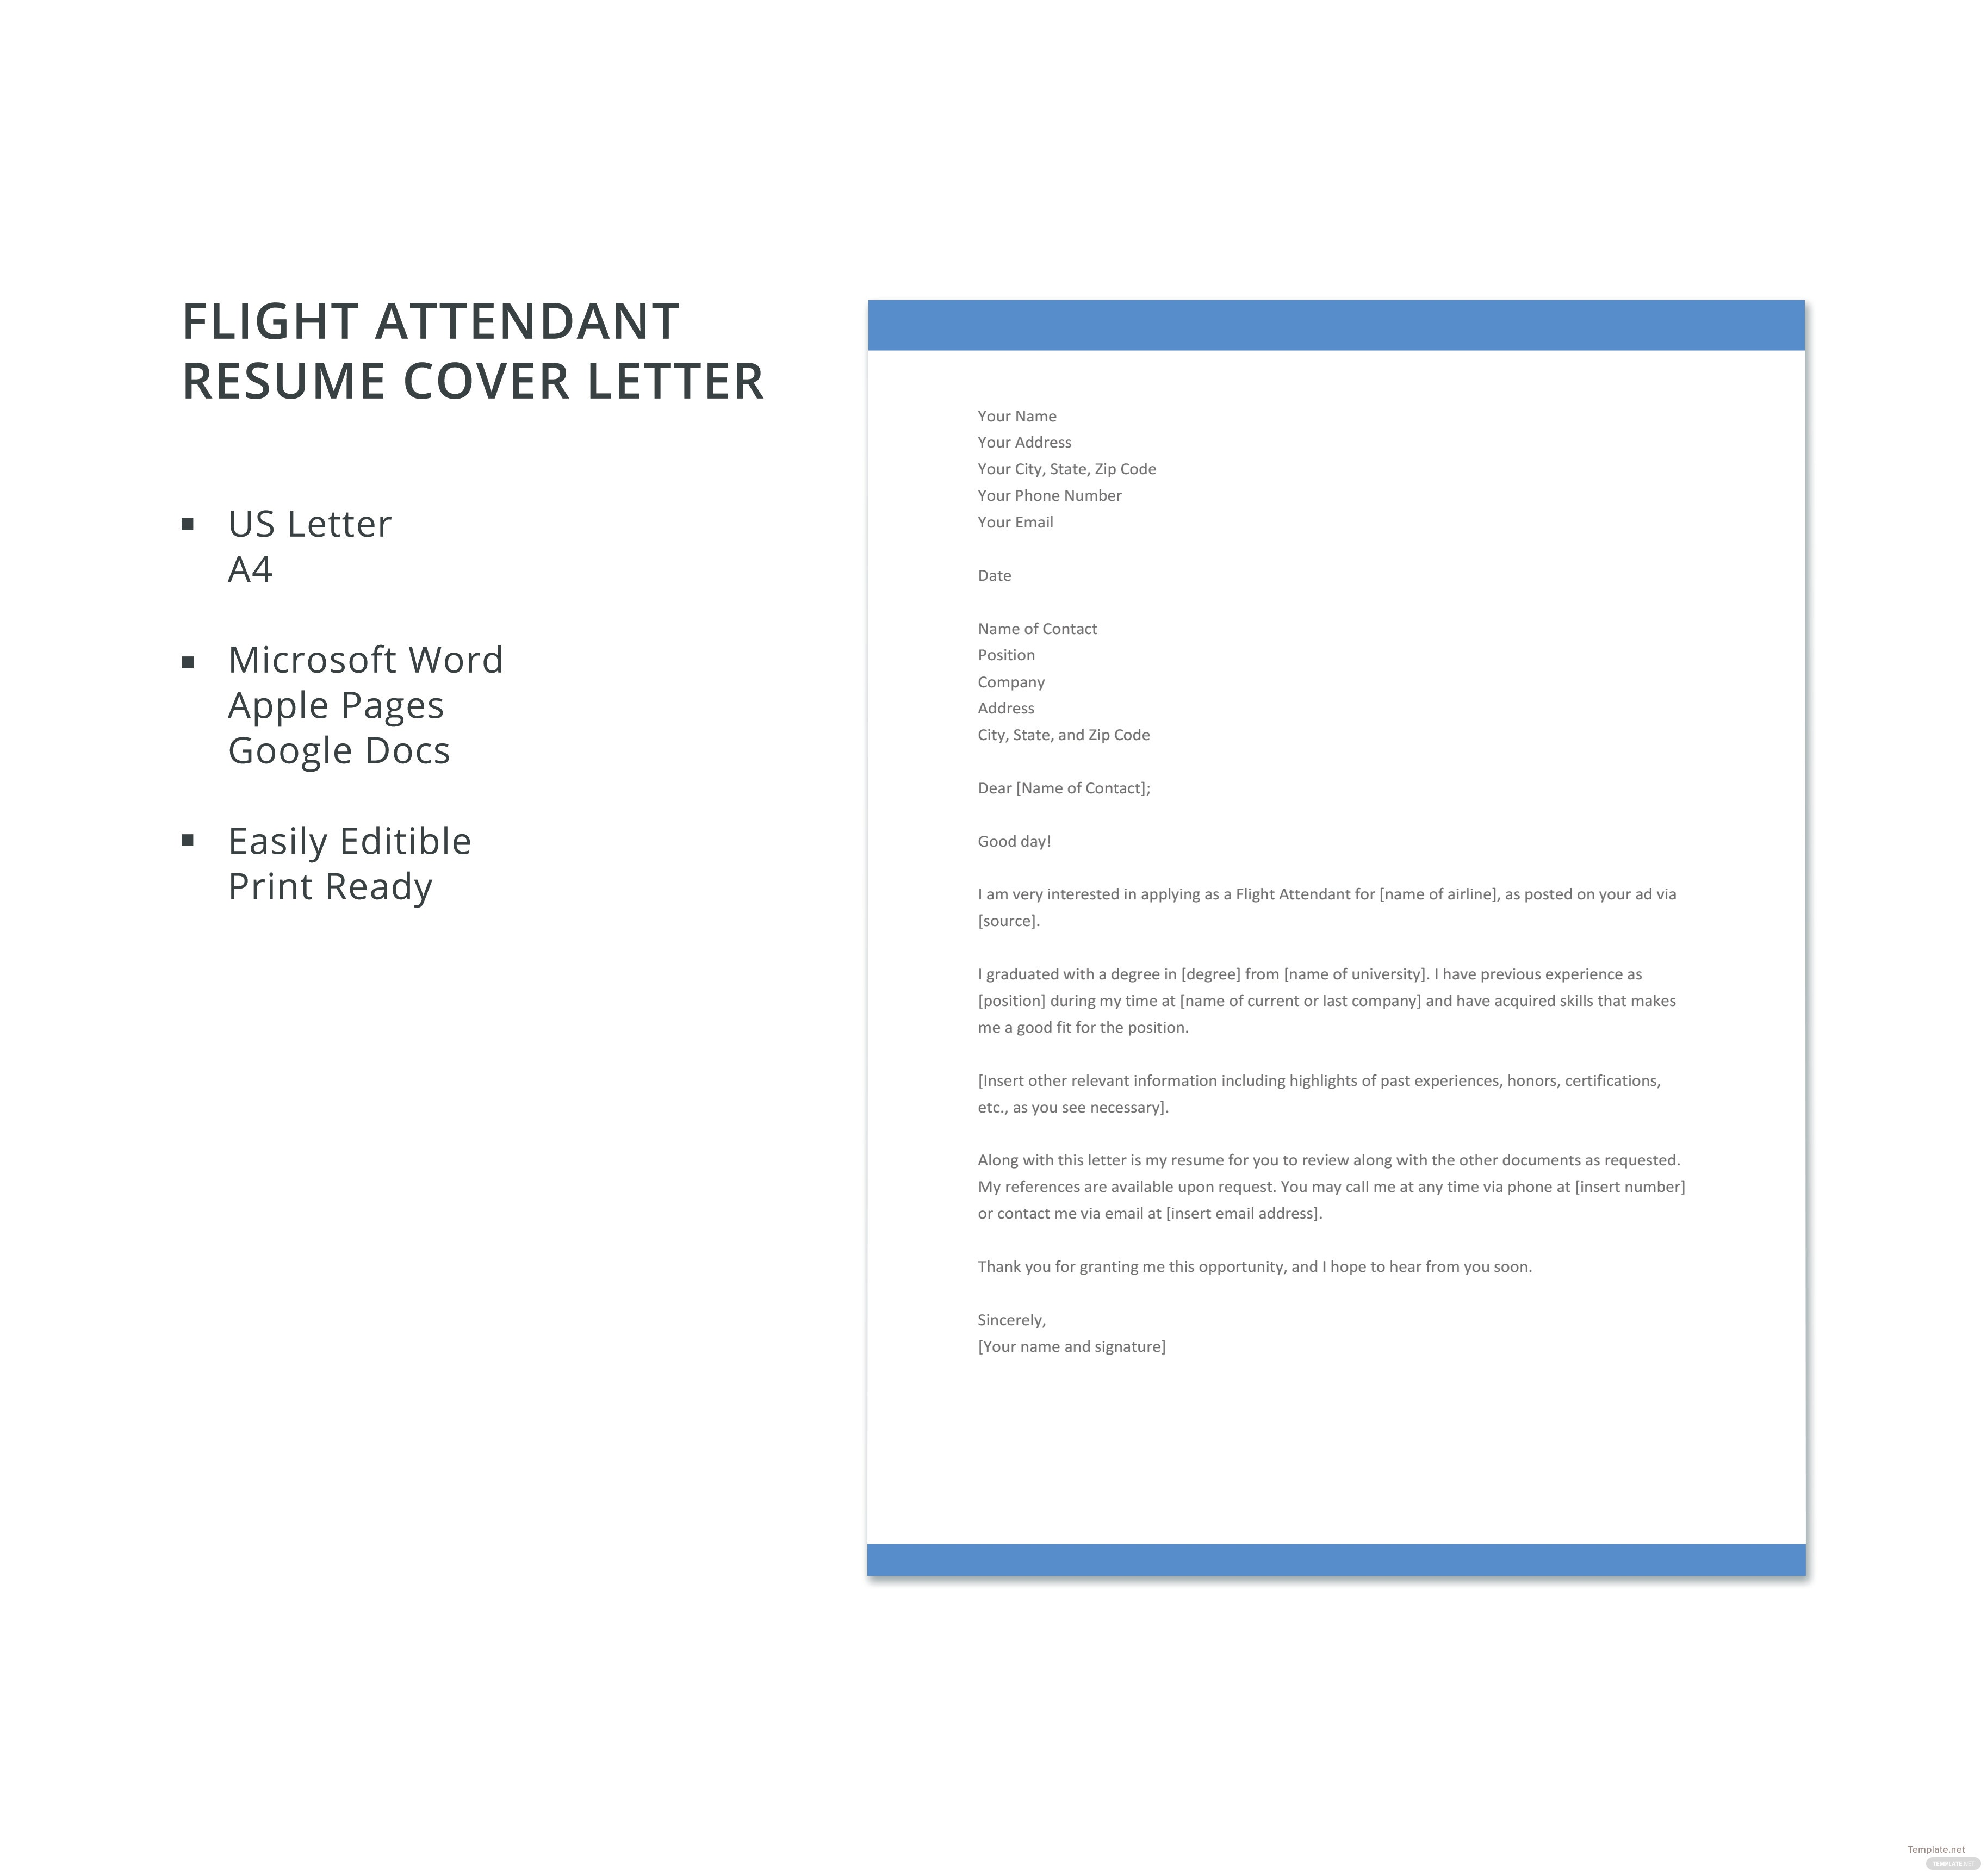 Free Flight Attendant Resume Cover Letter Template in Microsoft Word ...